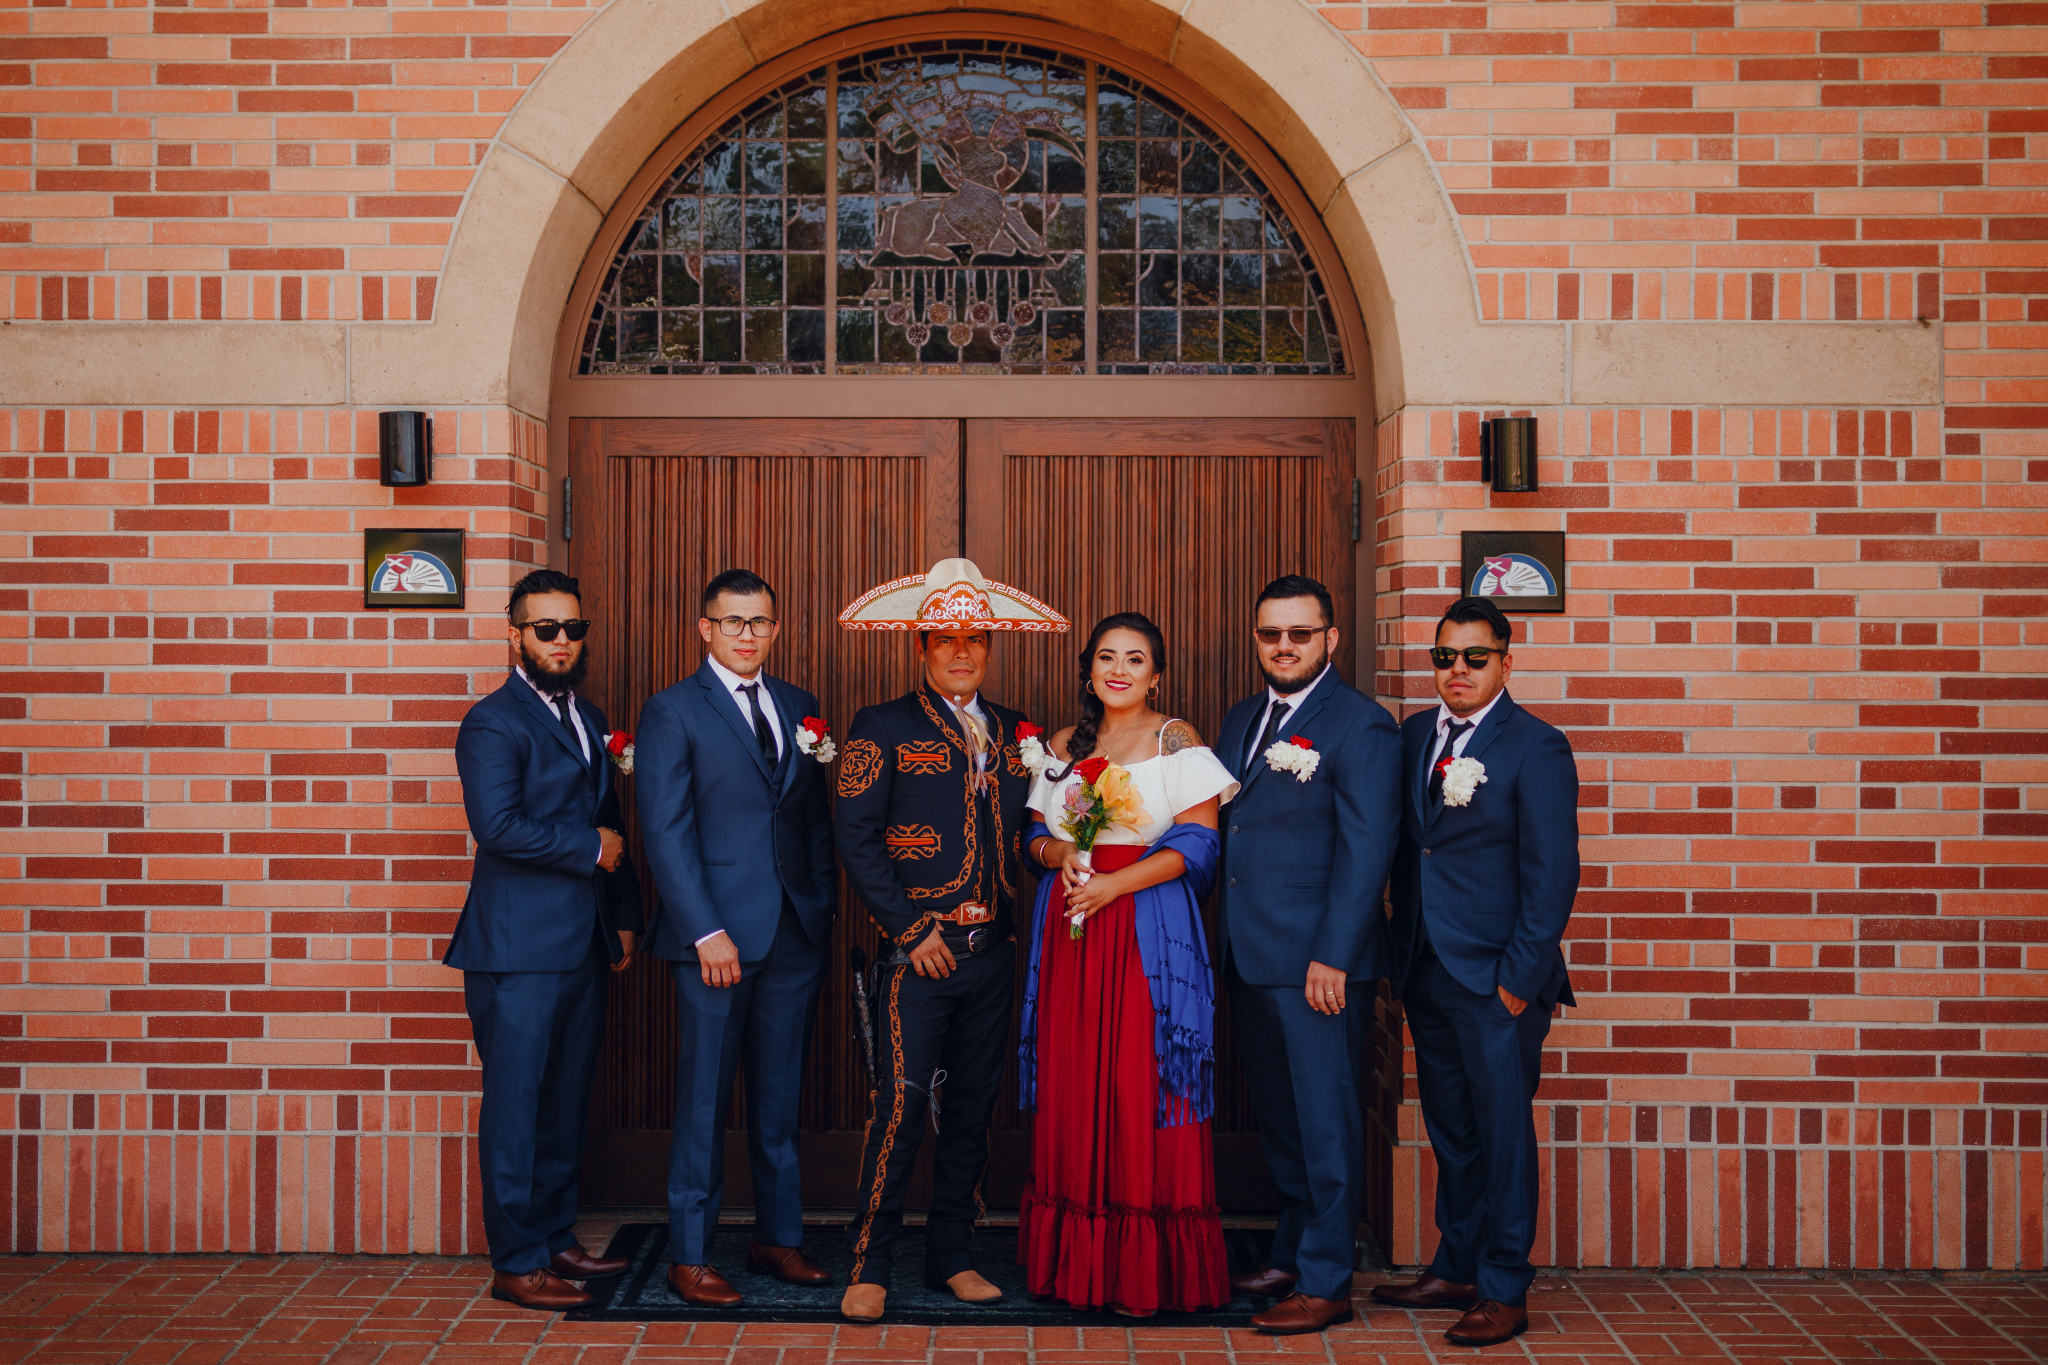 San Diego Wedding Photographer | groom and groomsmen with maiden of honour